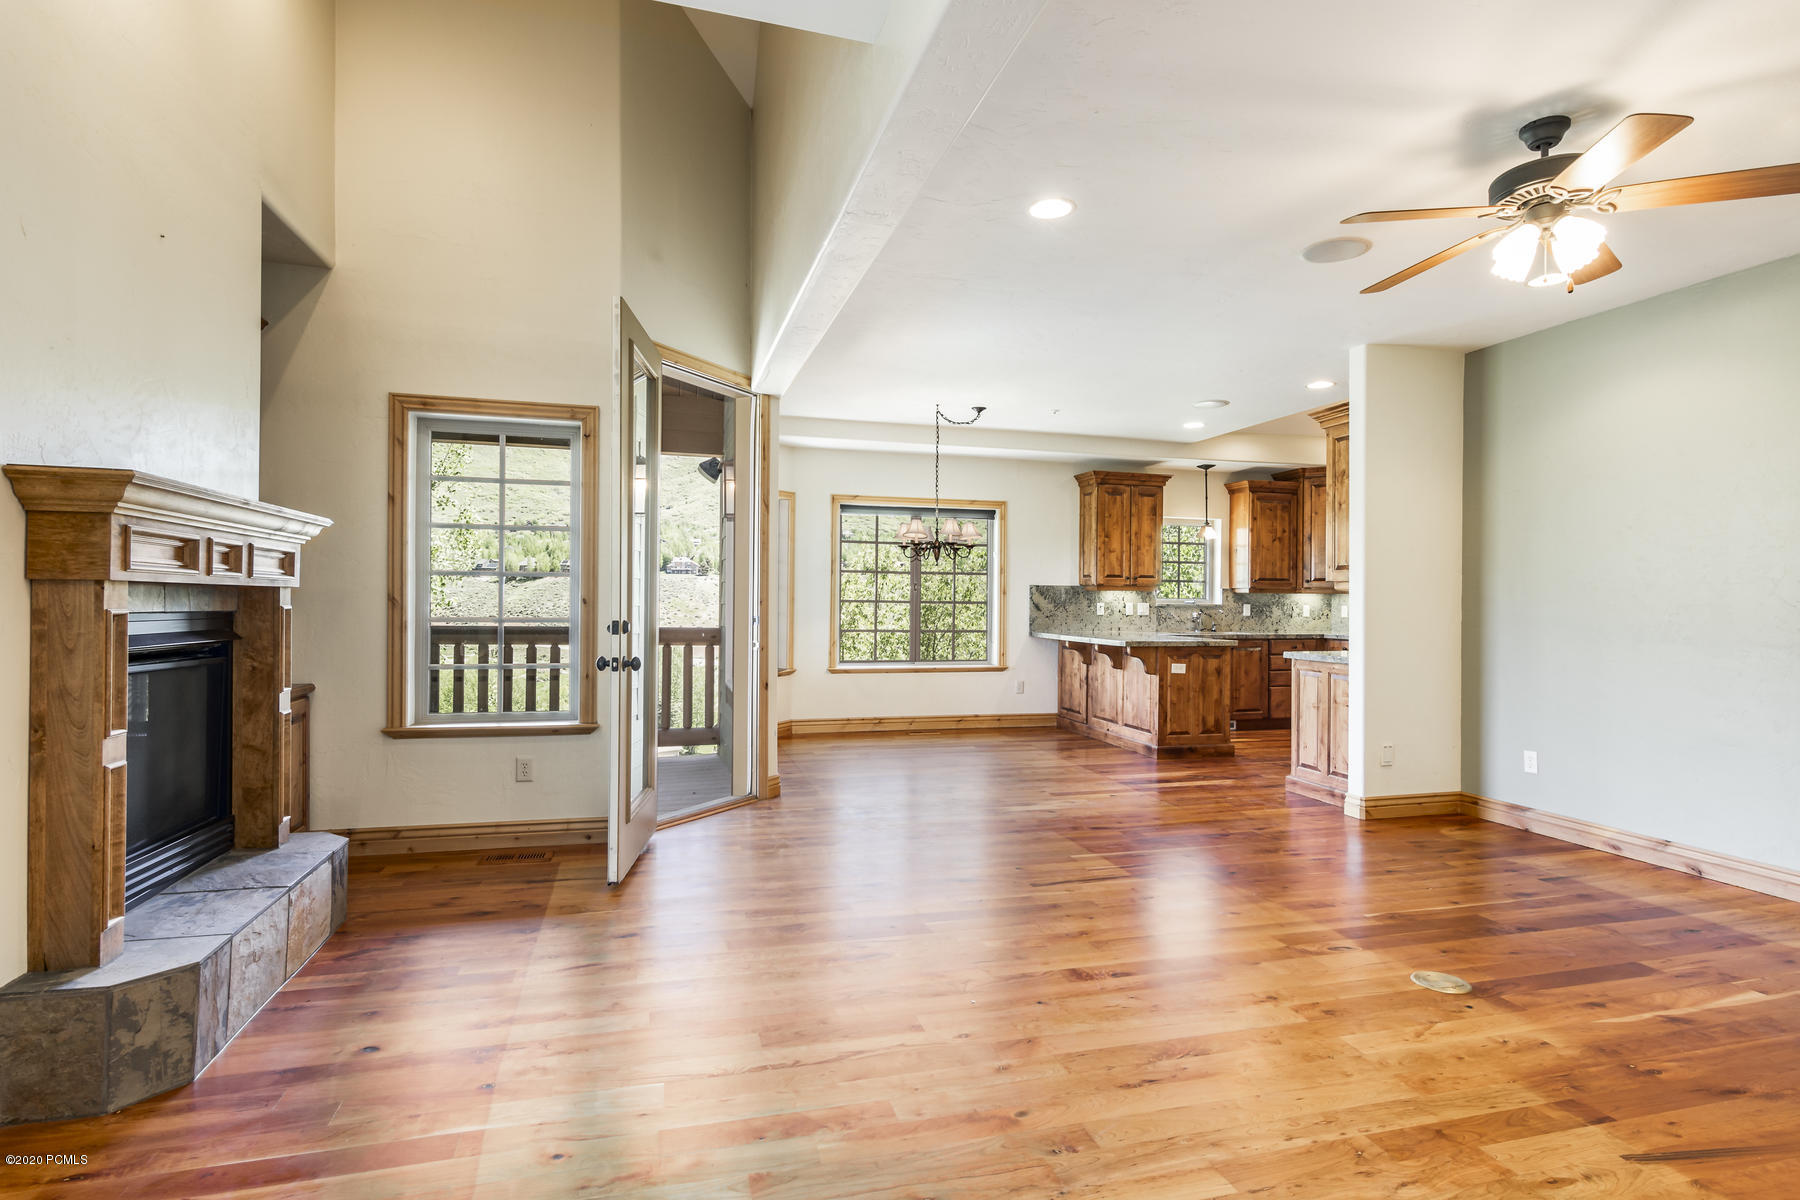 3032 Canyon Links Dr, Park City, Utah 84098, 3 Bedrooms Bedrooms, ,4 BathroomsBathrooms,Condominium,For Sale,Canyon Links Dr,12001723